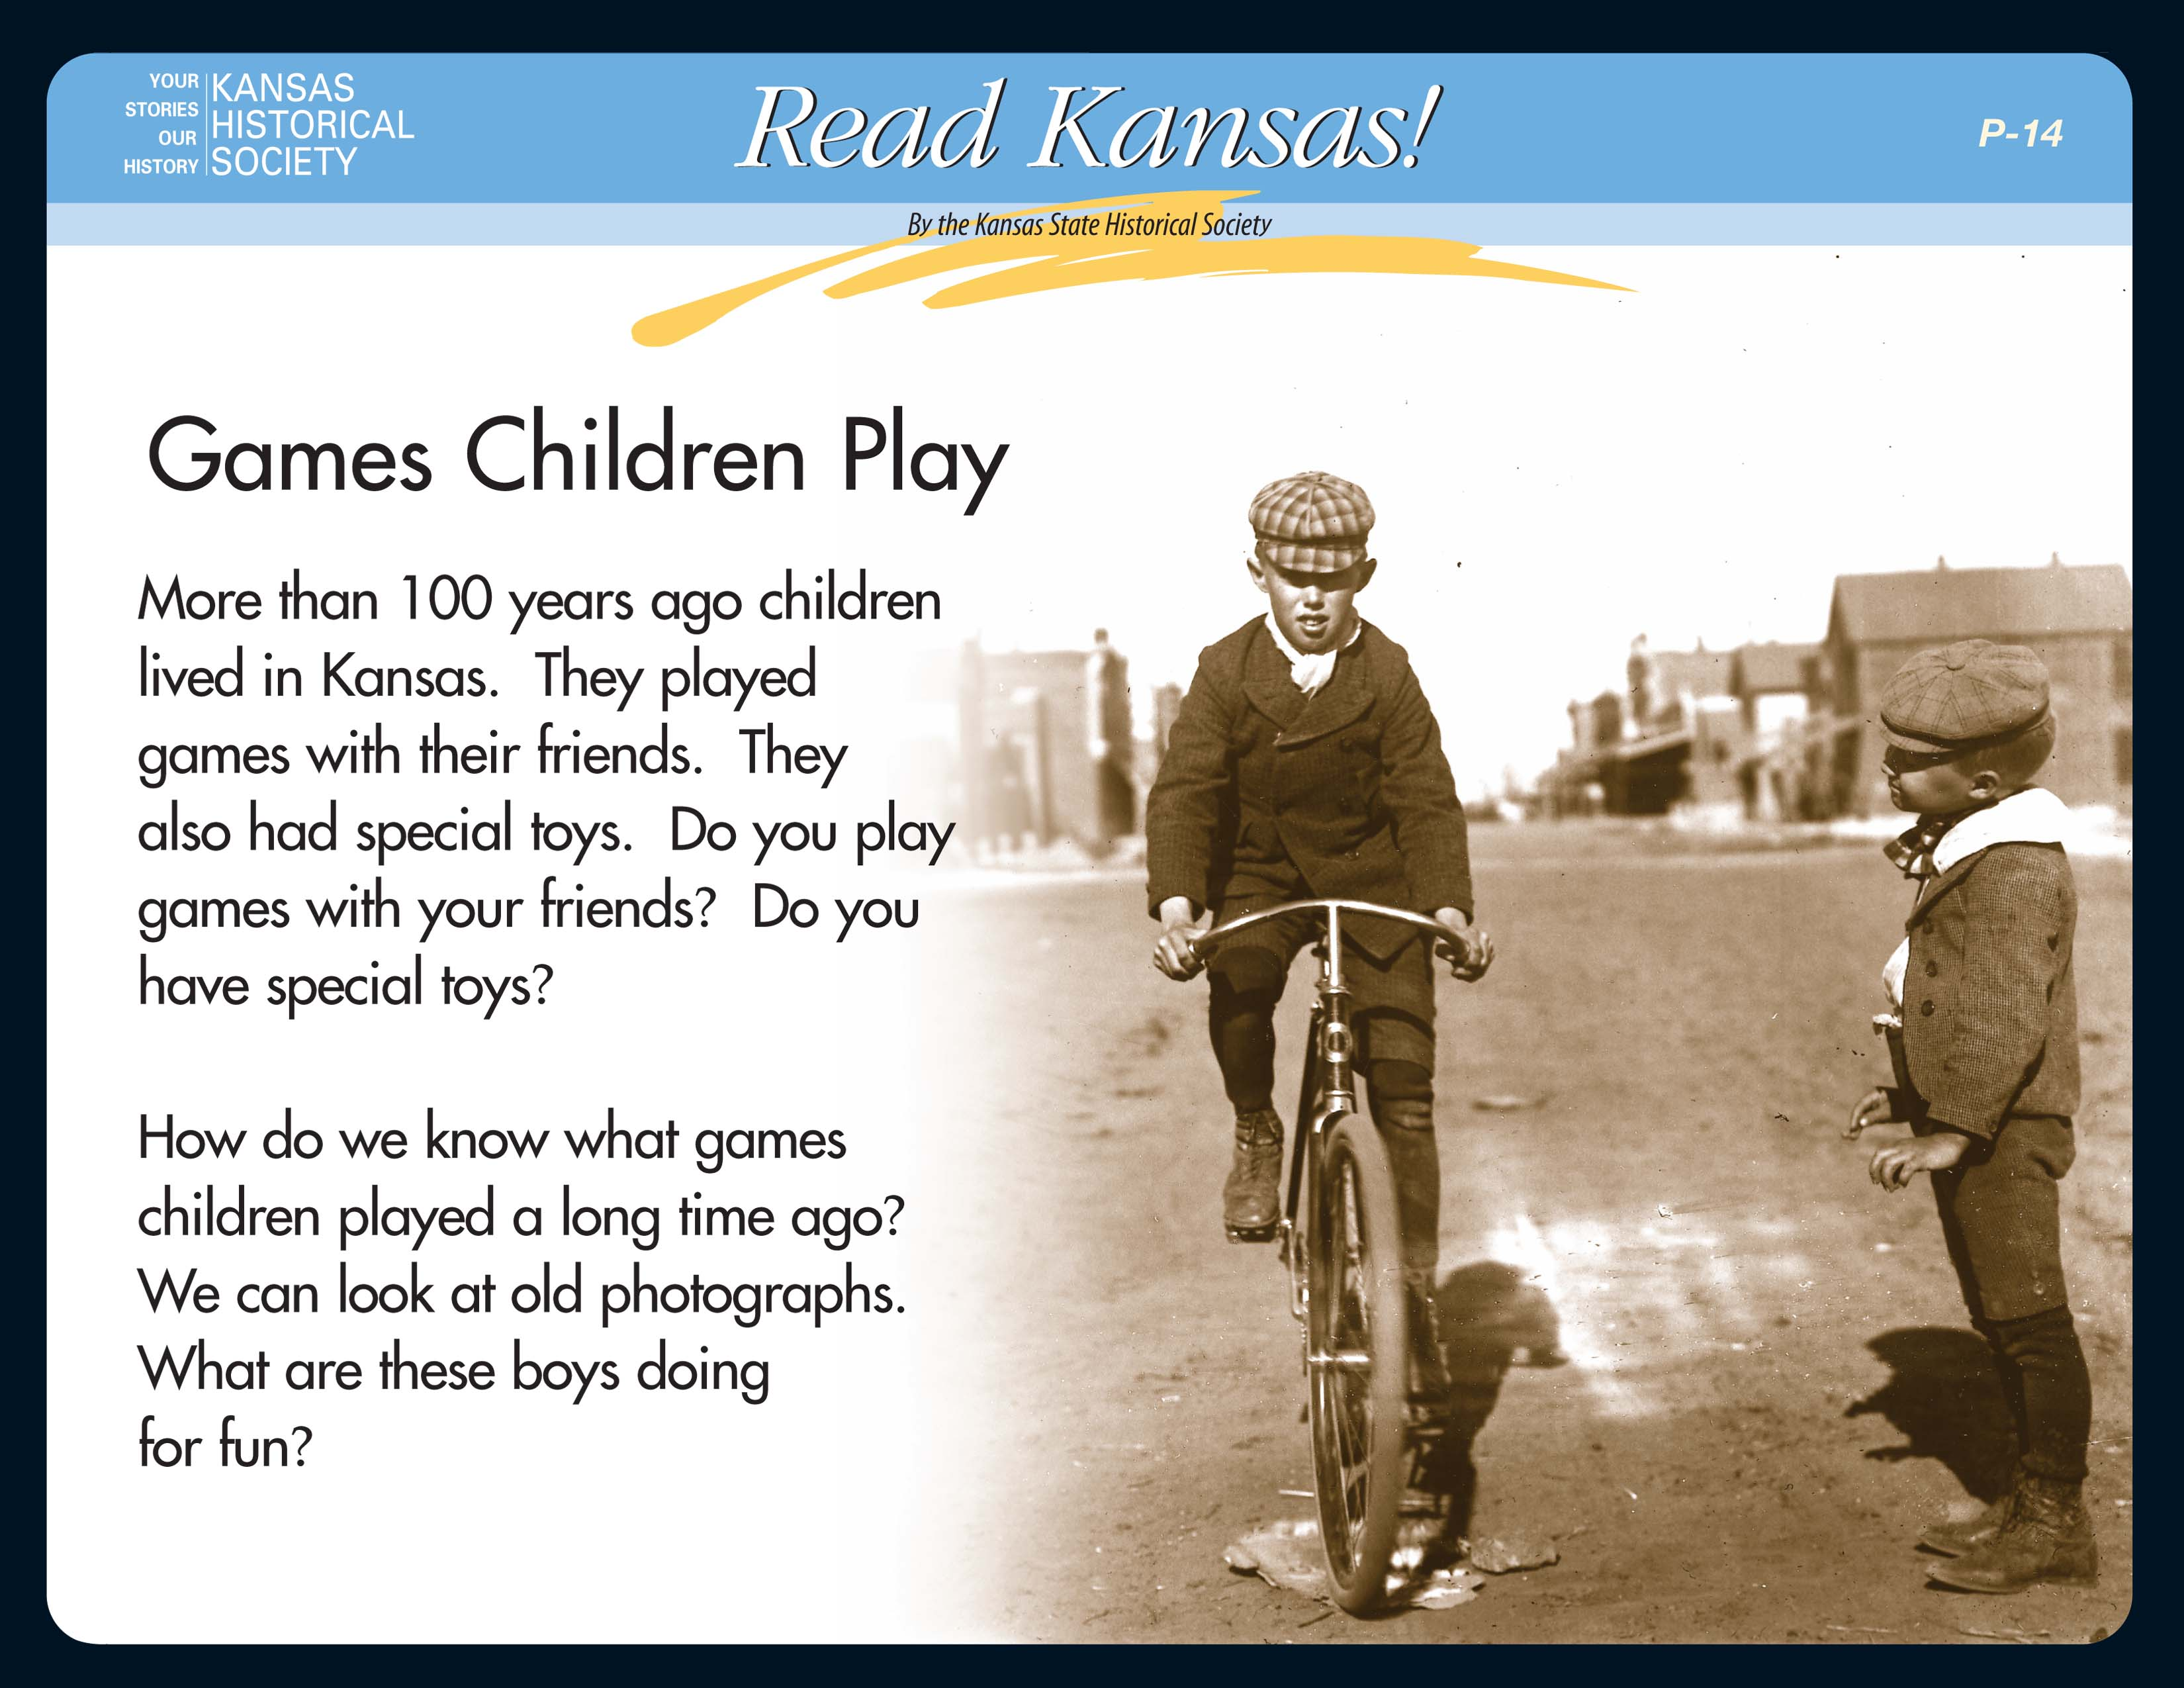 Read Kansas! Primary - P-14 Games Children Play: Then and